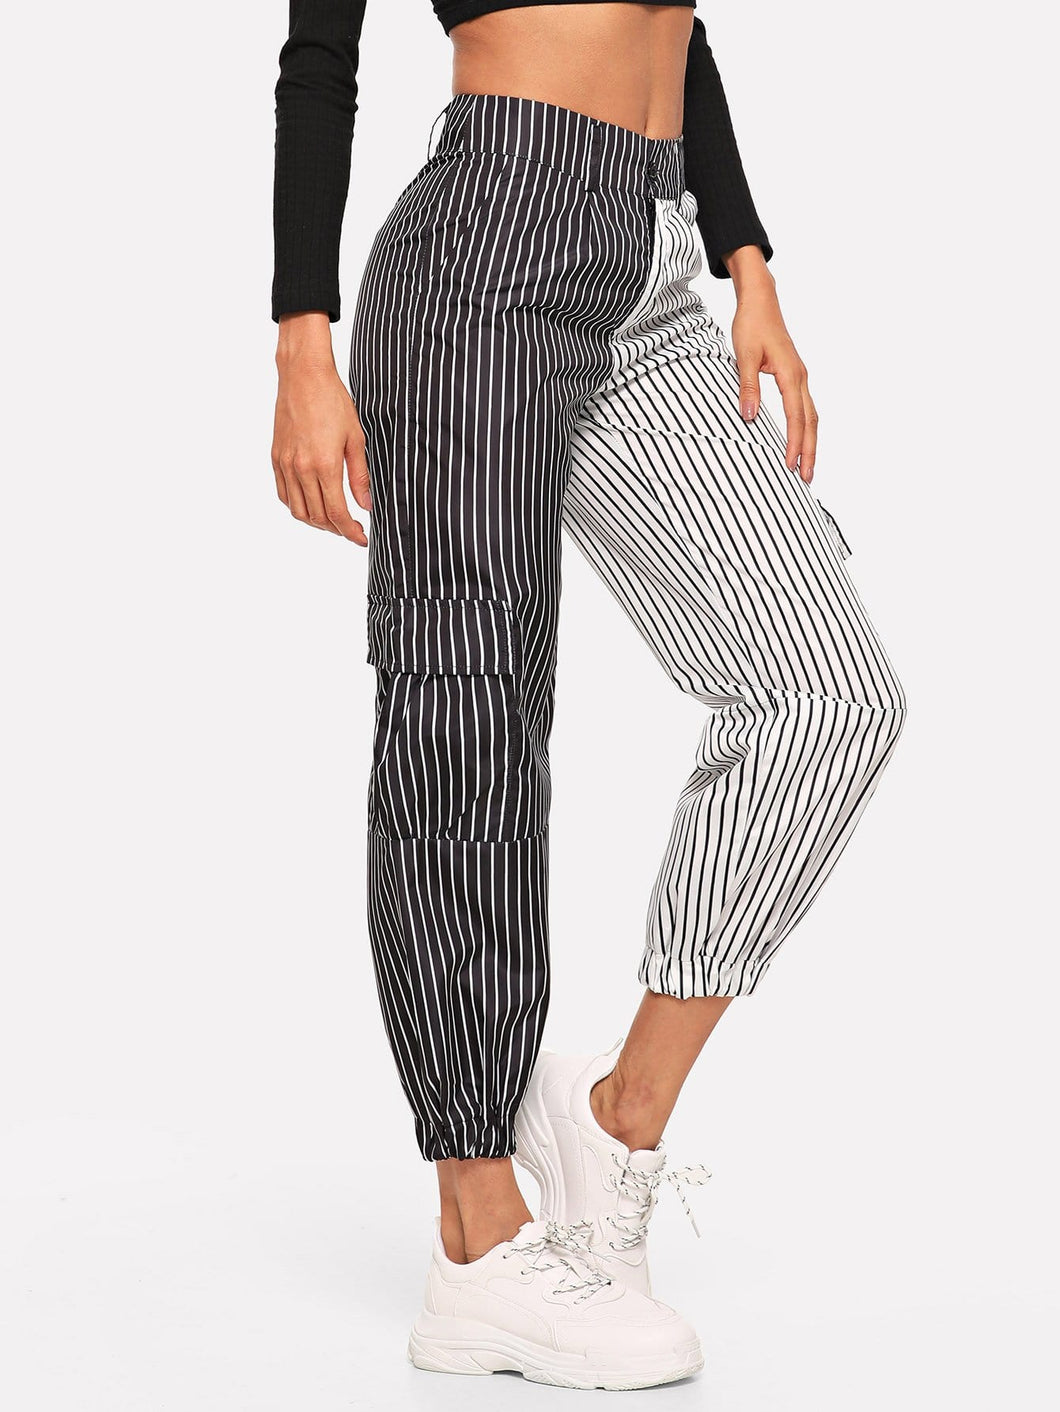 Claire Striped Pants